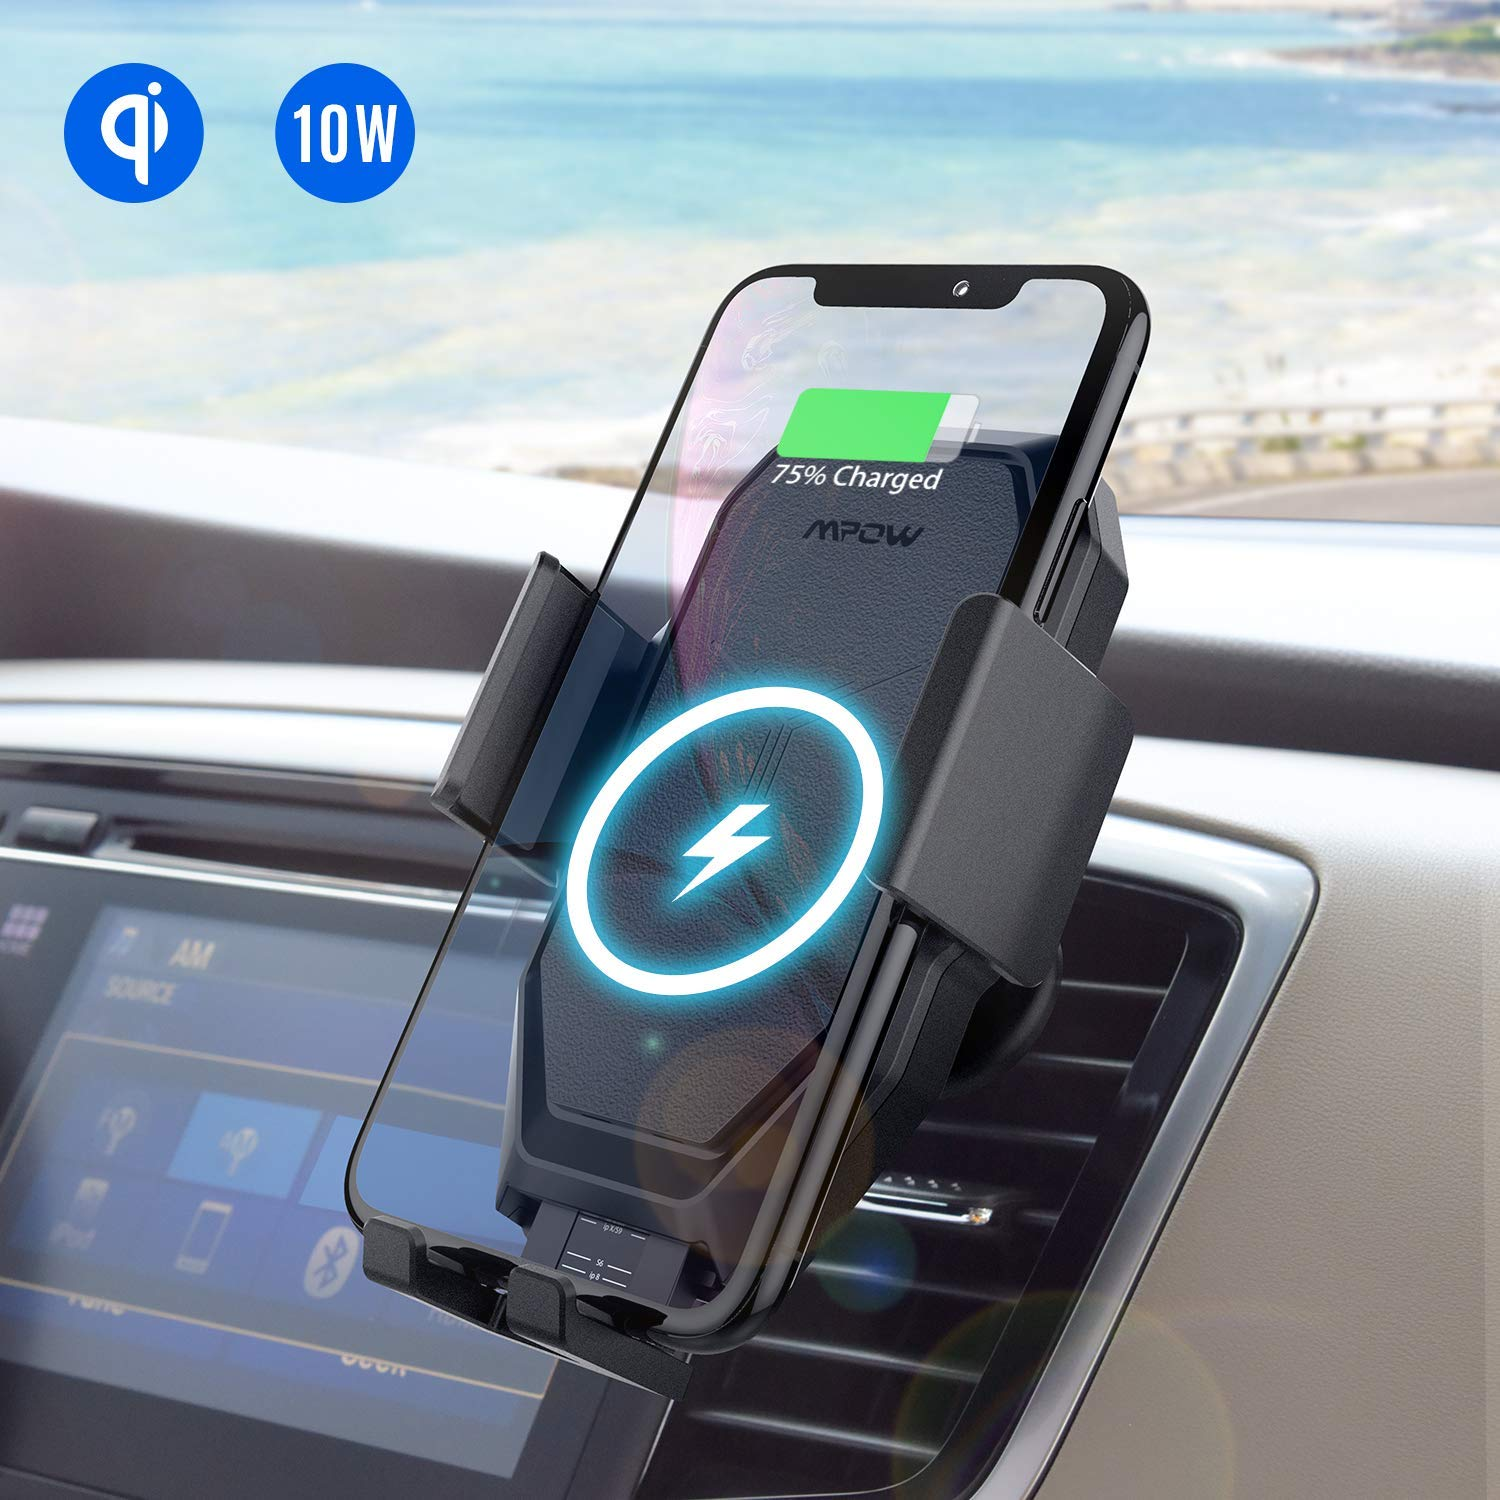 Car Phone Holder with Wireless Charging Facility